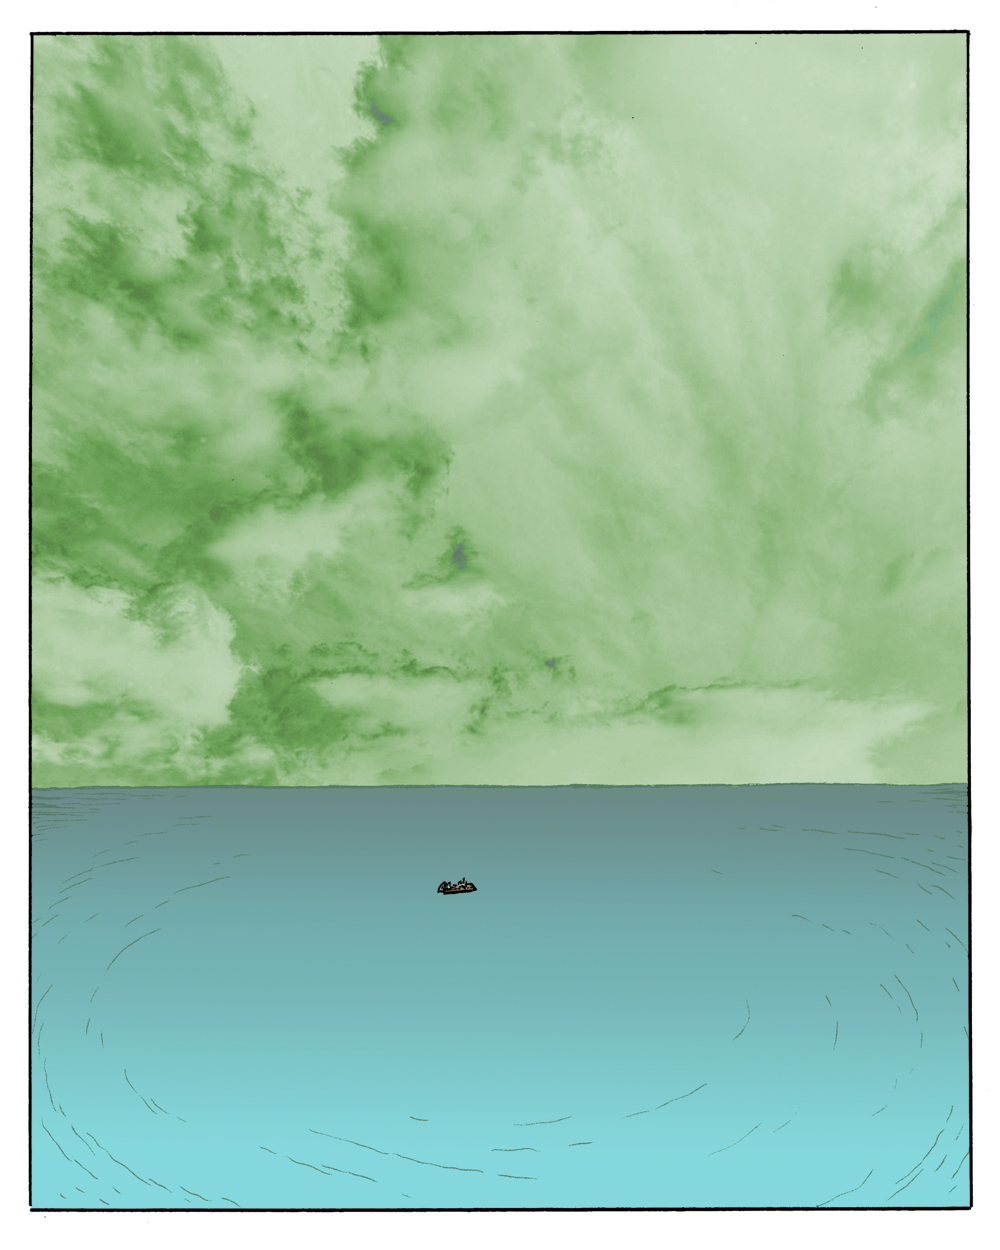 Chapter 1 - Page 67